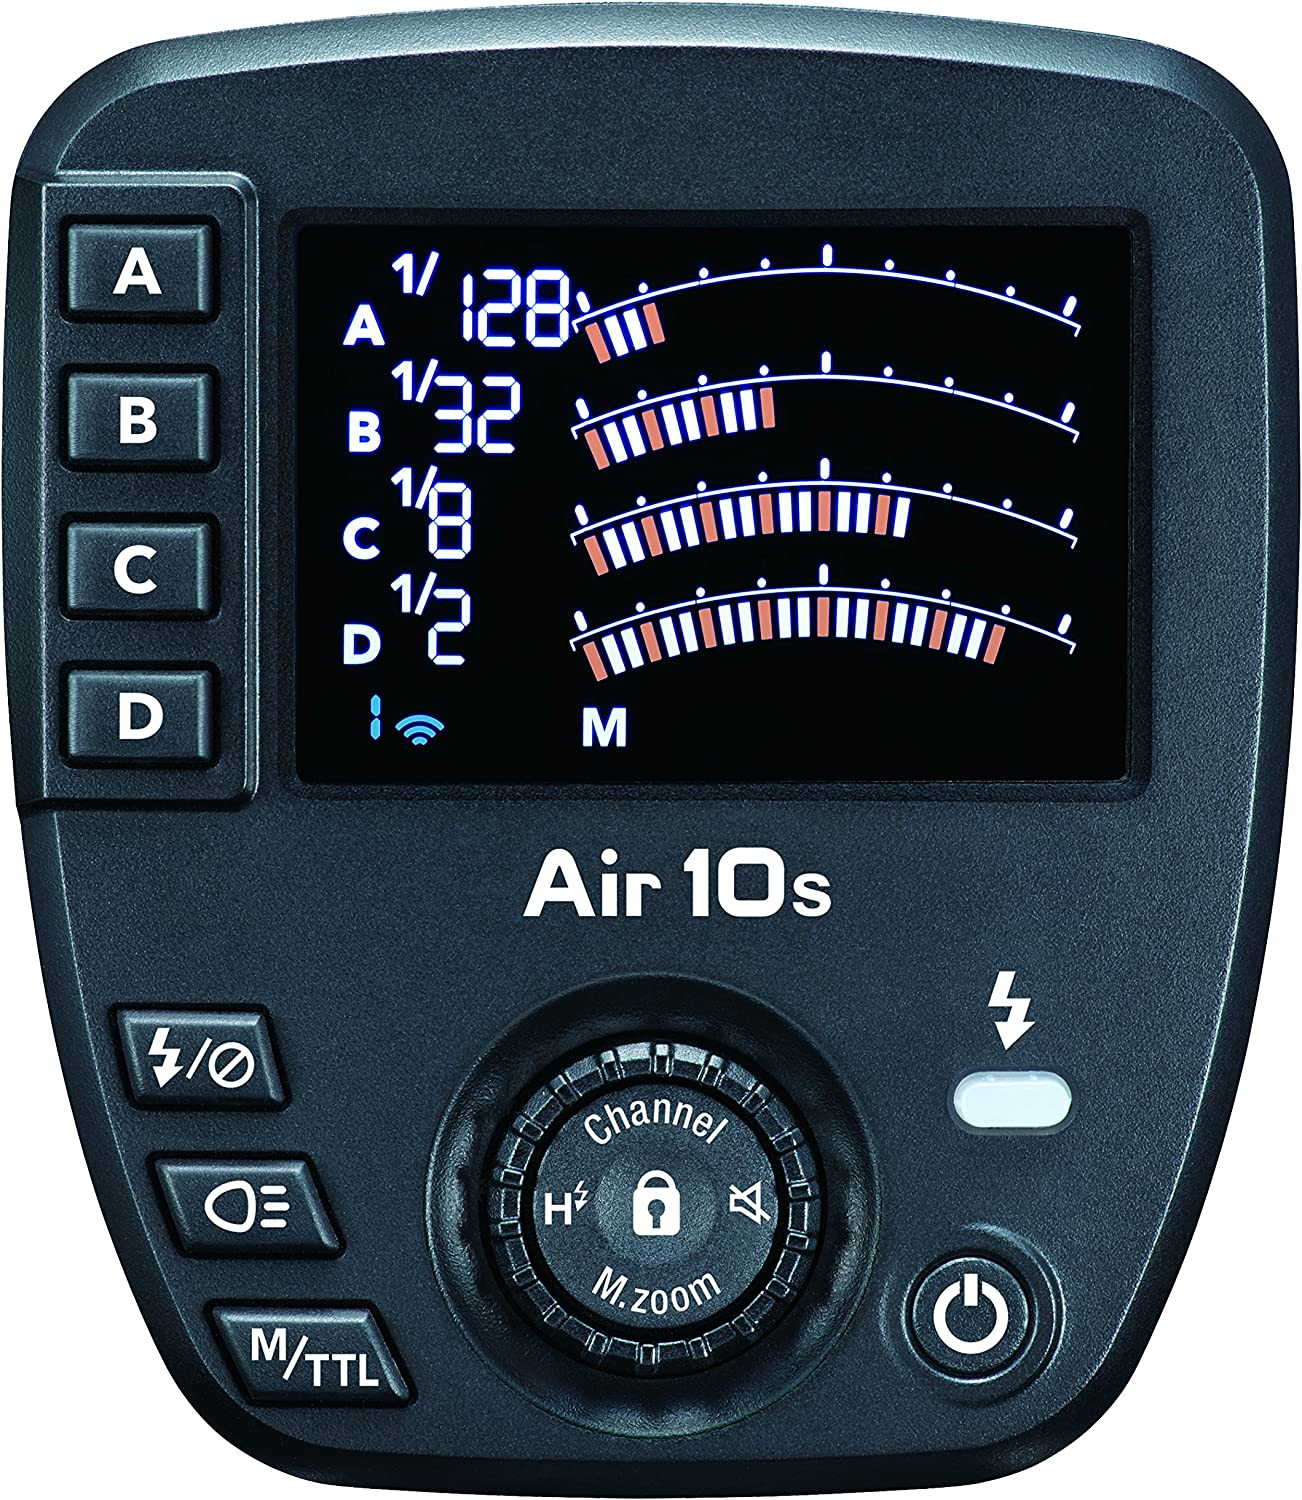 Nissin Air 10s Flash Commander